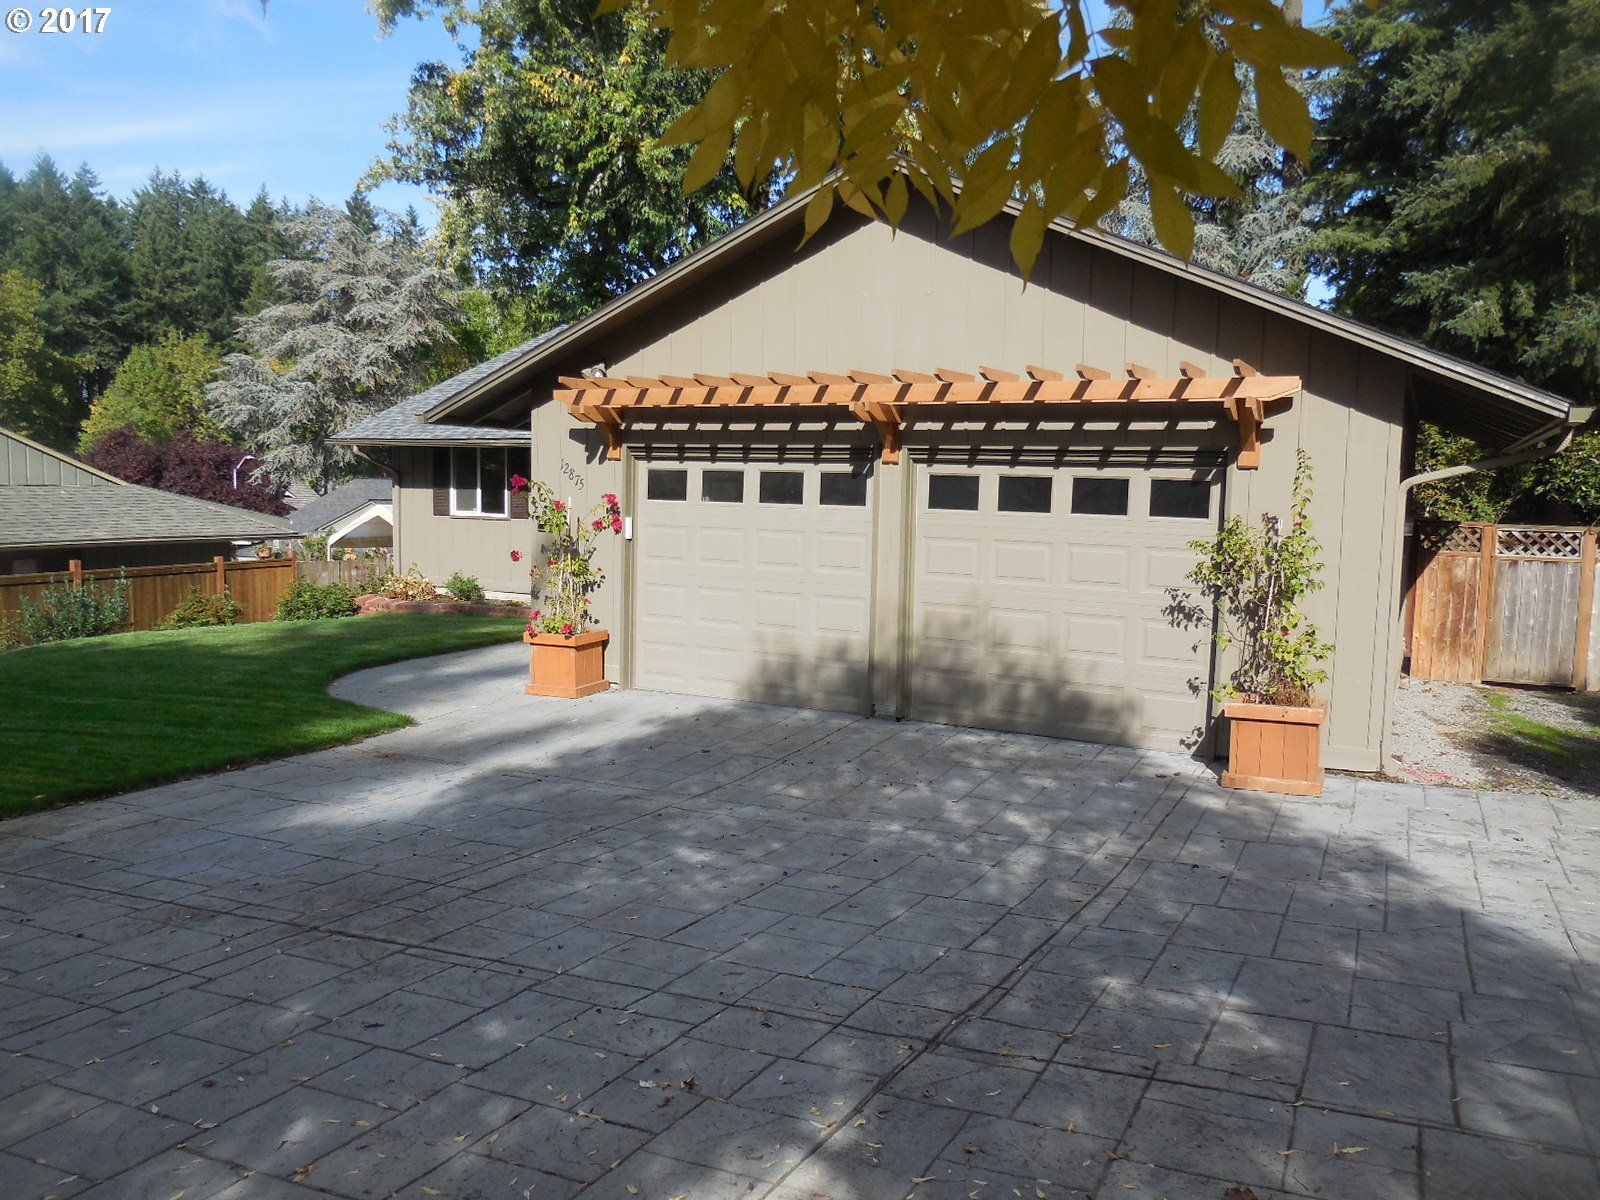 OPEN HOUSE 9/24,  12-3PM. Not a surface untouched in this stunning 2,708 SF 5 bedroom  3 bath home. The remarkable  renovation includes high end finishes throughout. All new baths, kitchen with island/eating bar,  granite counters, hardwood, tile, carpet,  new heat pump w/ A/C for main level, fresh interior & exterior paint, a newer roof,   Private fenced yard. New front sod & new front sprinklers. Desirable neighborhood, & more.